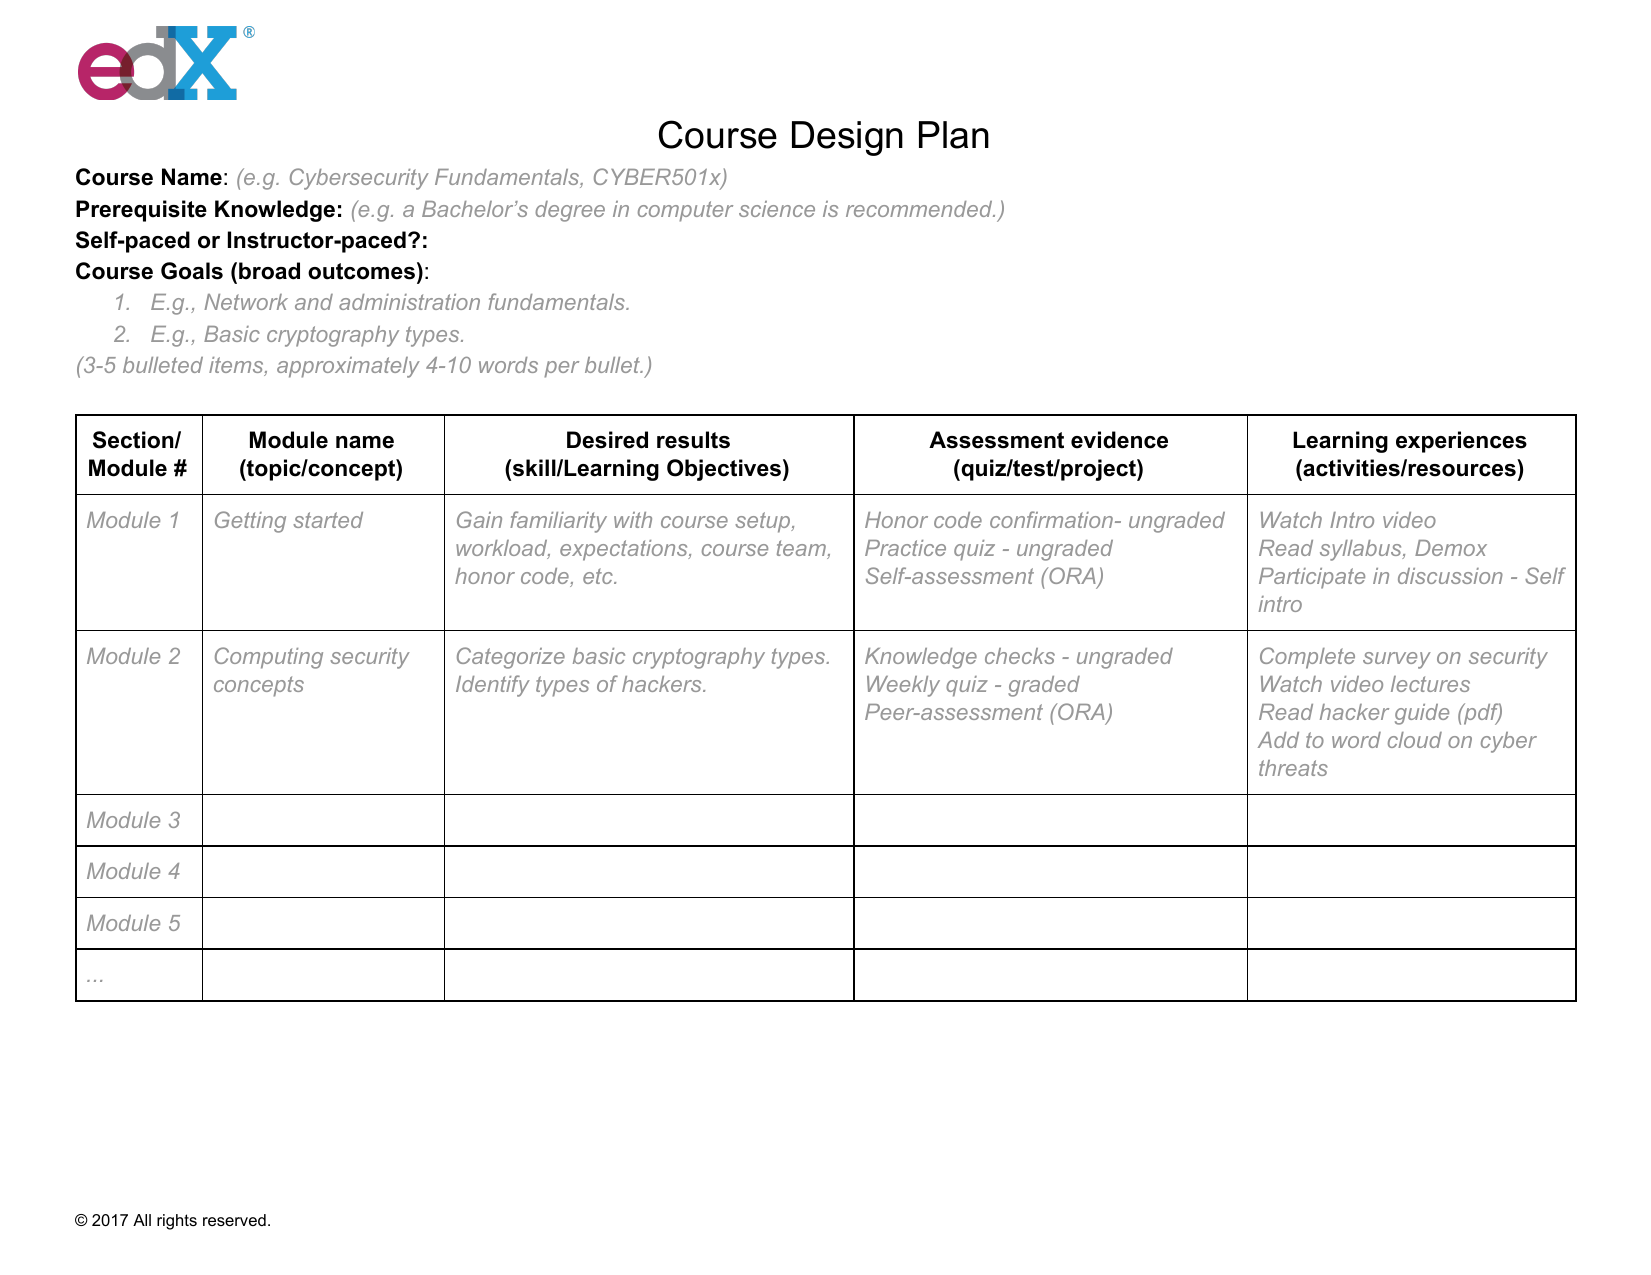 Course Design Plan Template Studiox